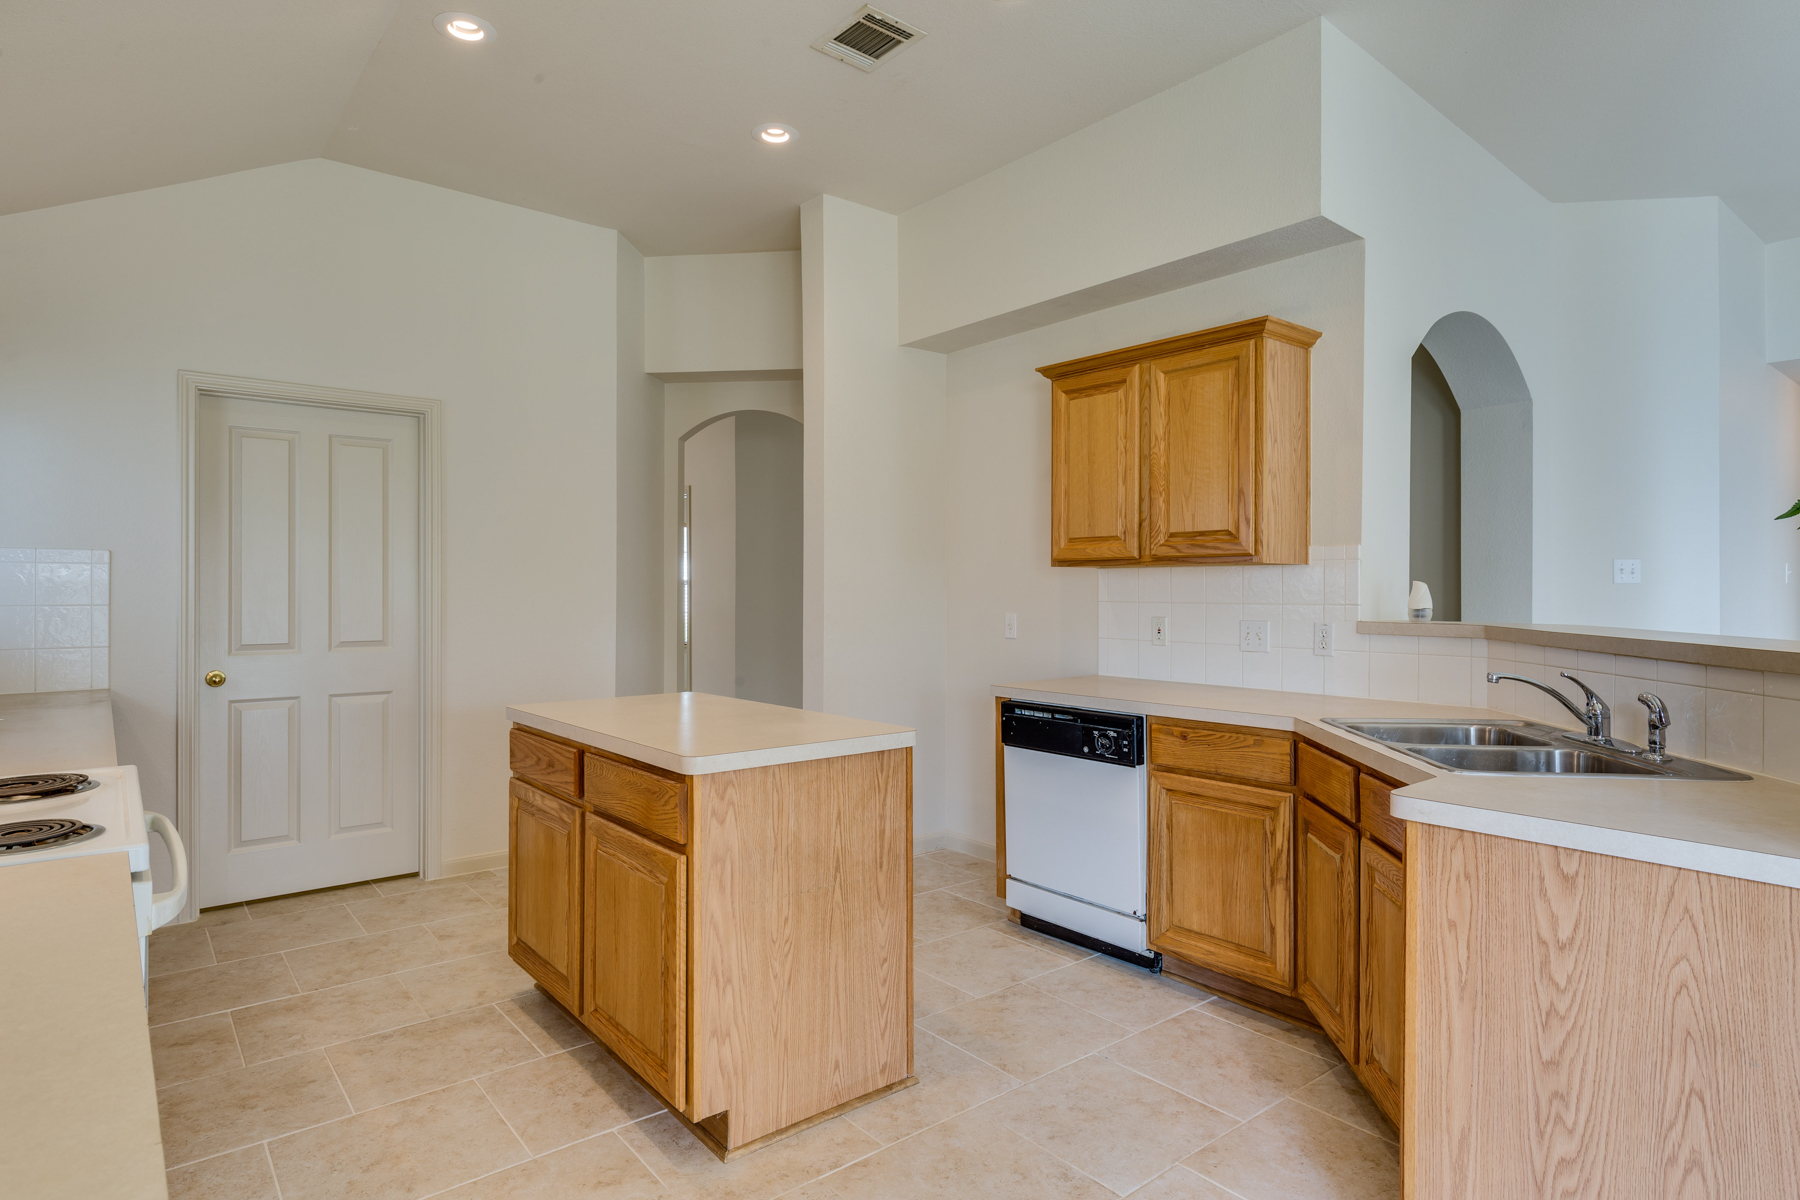 Additional photo for property listing at Beautiful One-Story Home in Creekview Estates 11046 Wilson Oaks San Antonio, Texas 78249 United States